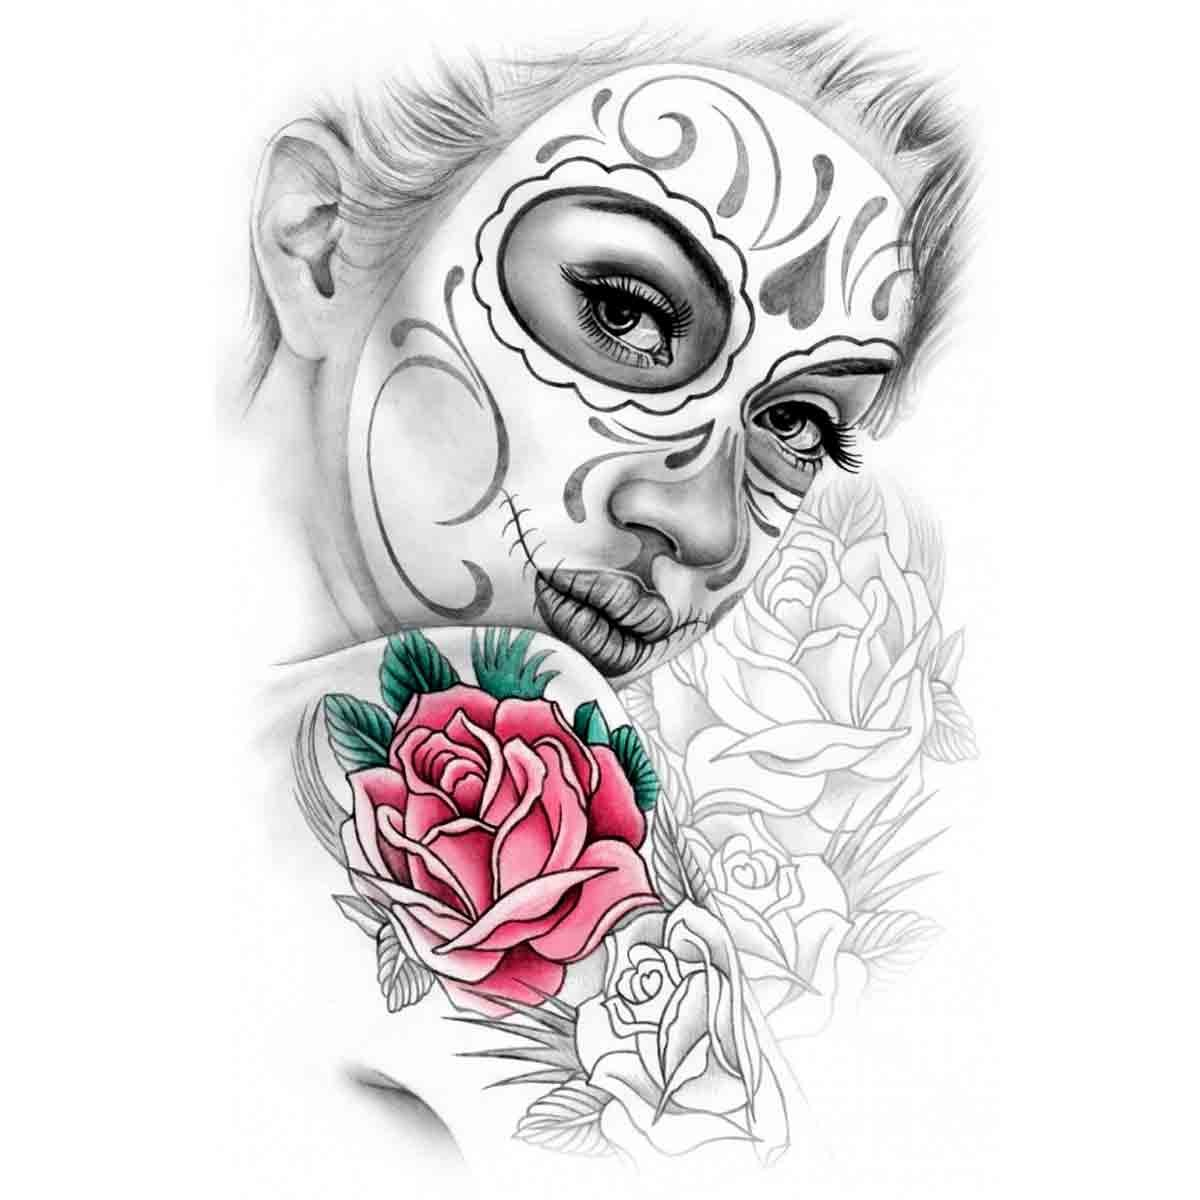 Tatoo temporaire esquisse femme maquillage mexicain - Maquillage mexicain facile ...